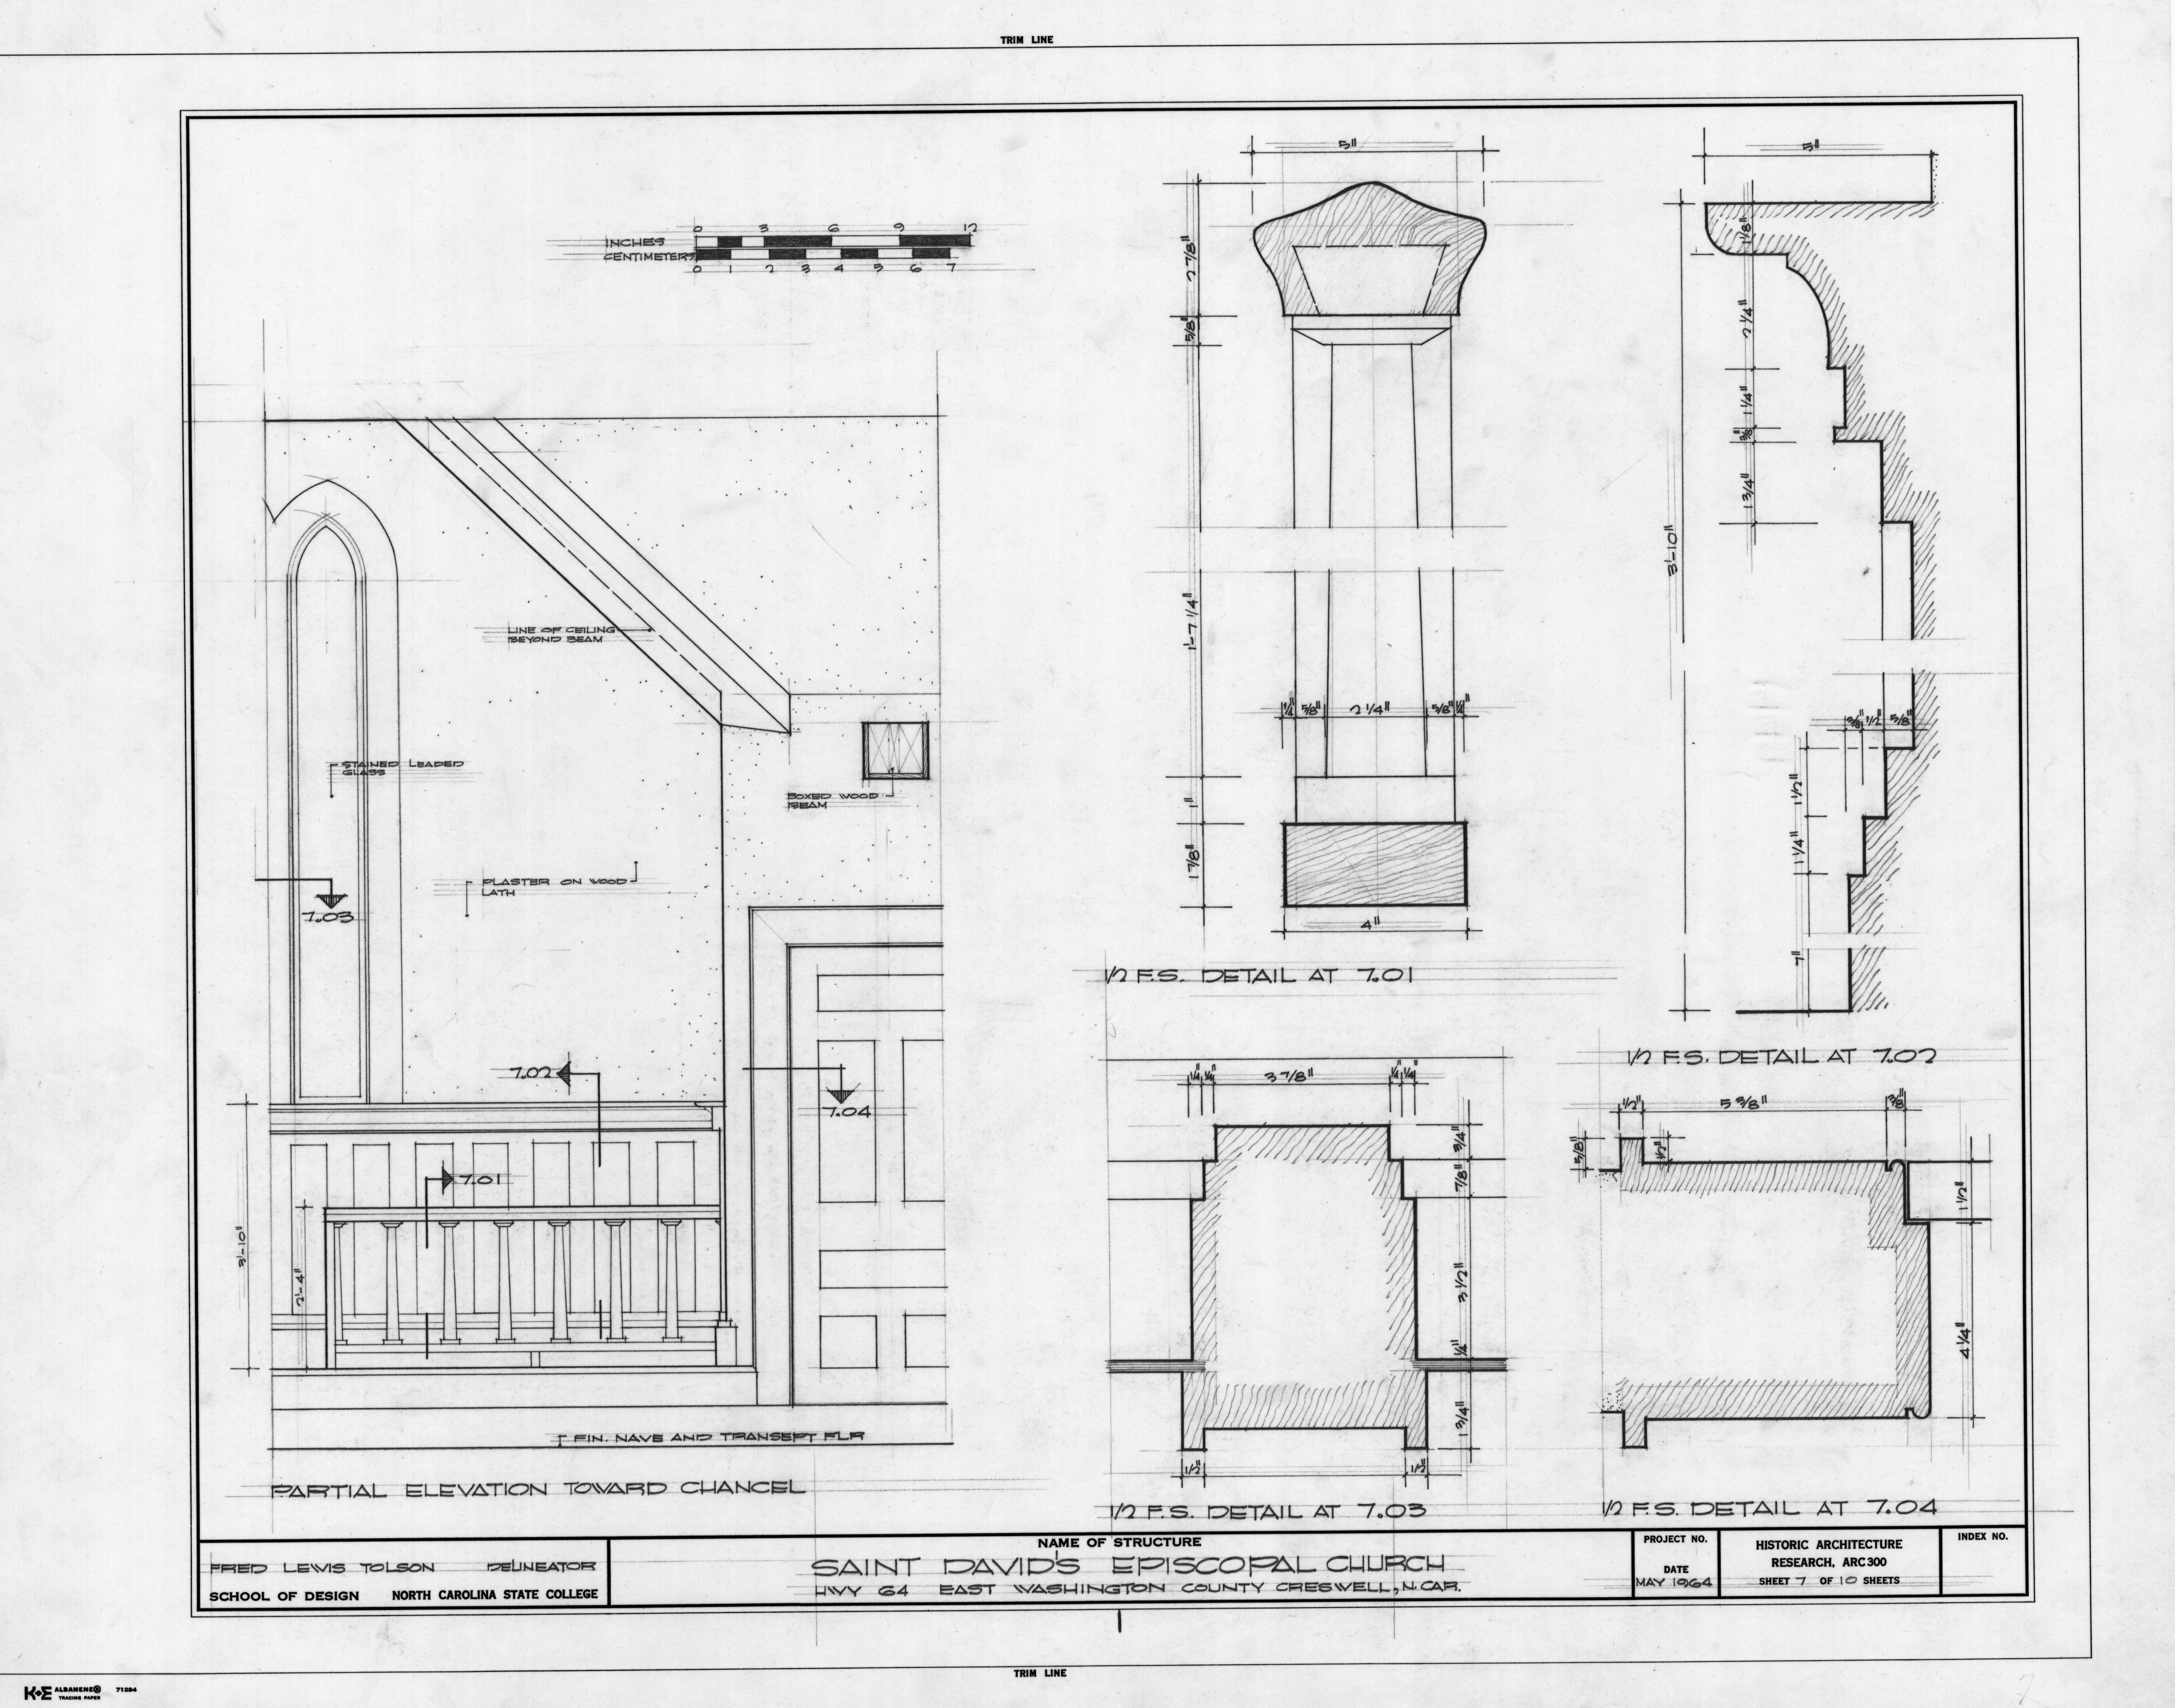 Partial interior elevation and details, St. David's